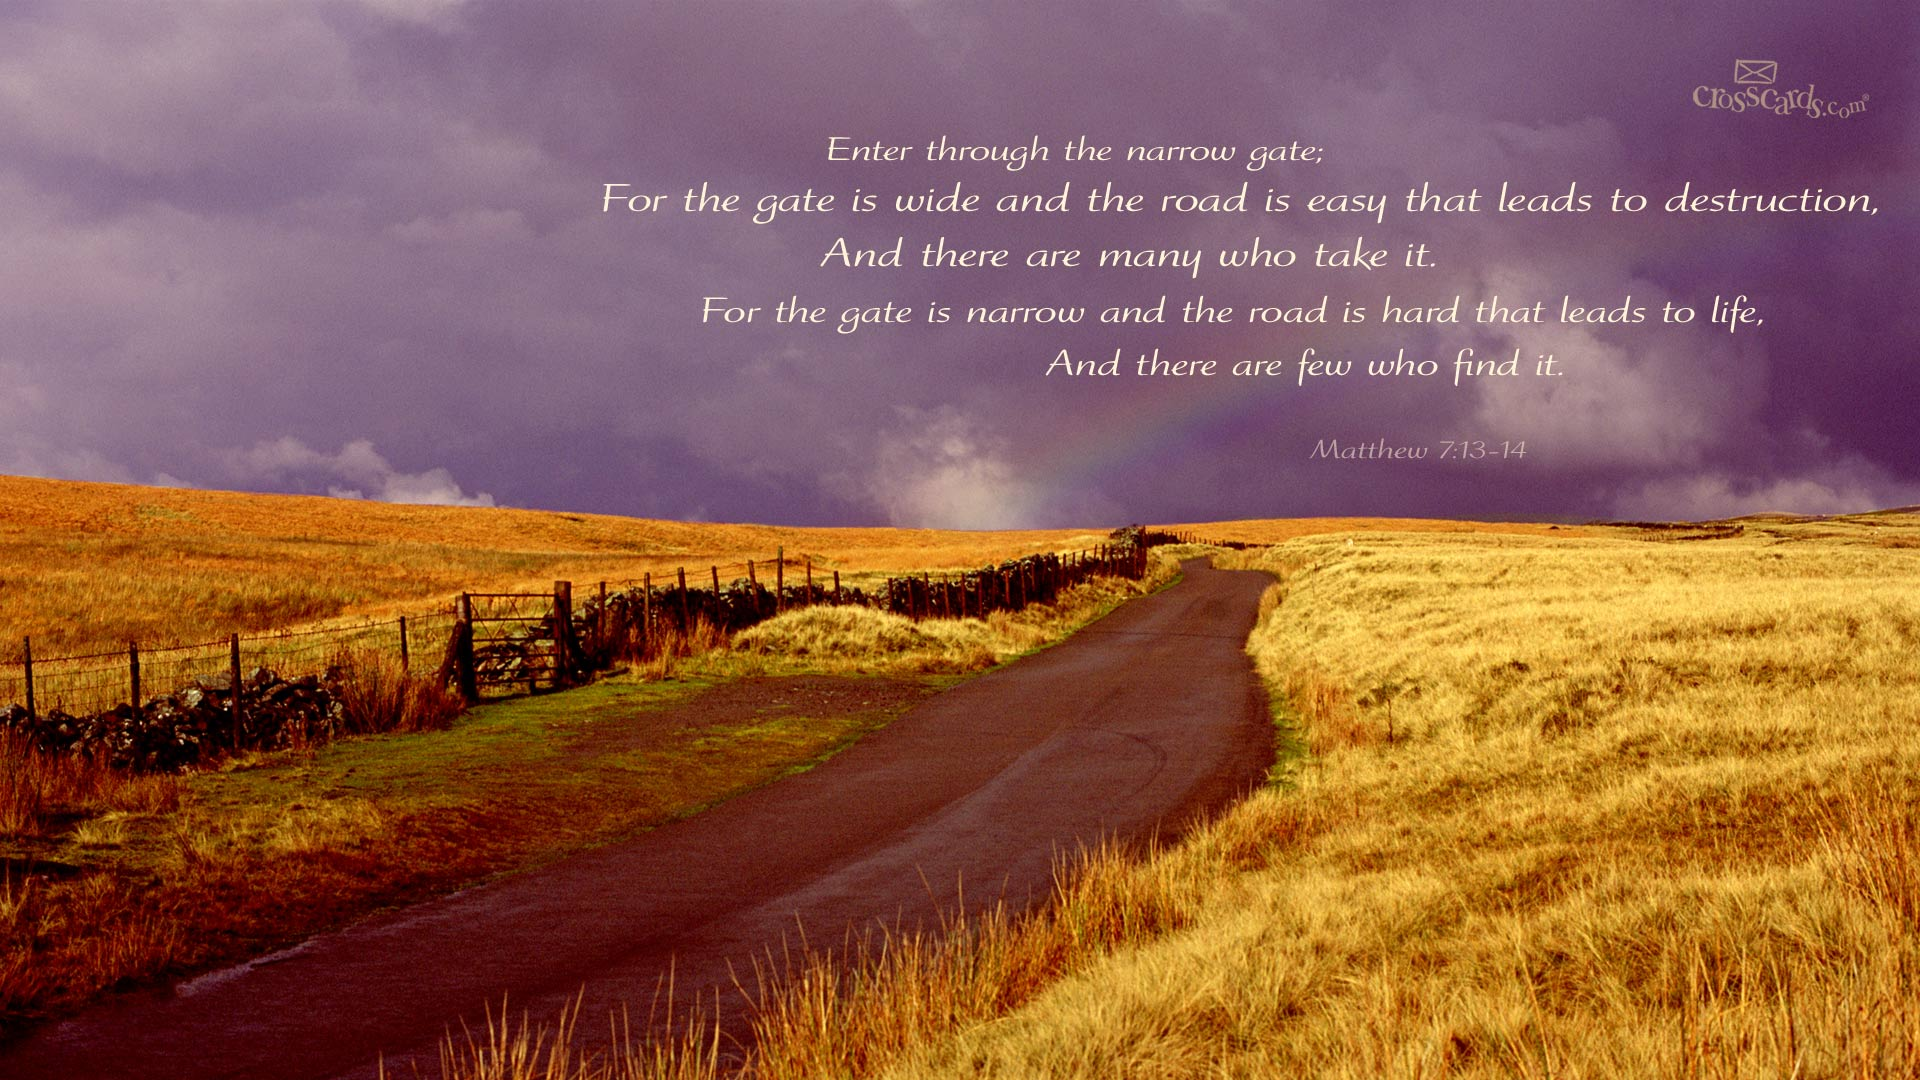 Bible verse wallpaper 266371 - Crosscards christian wallpaper ...